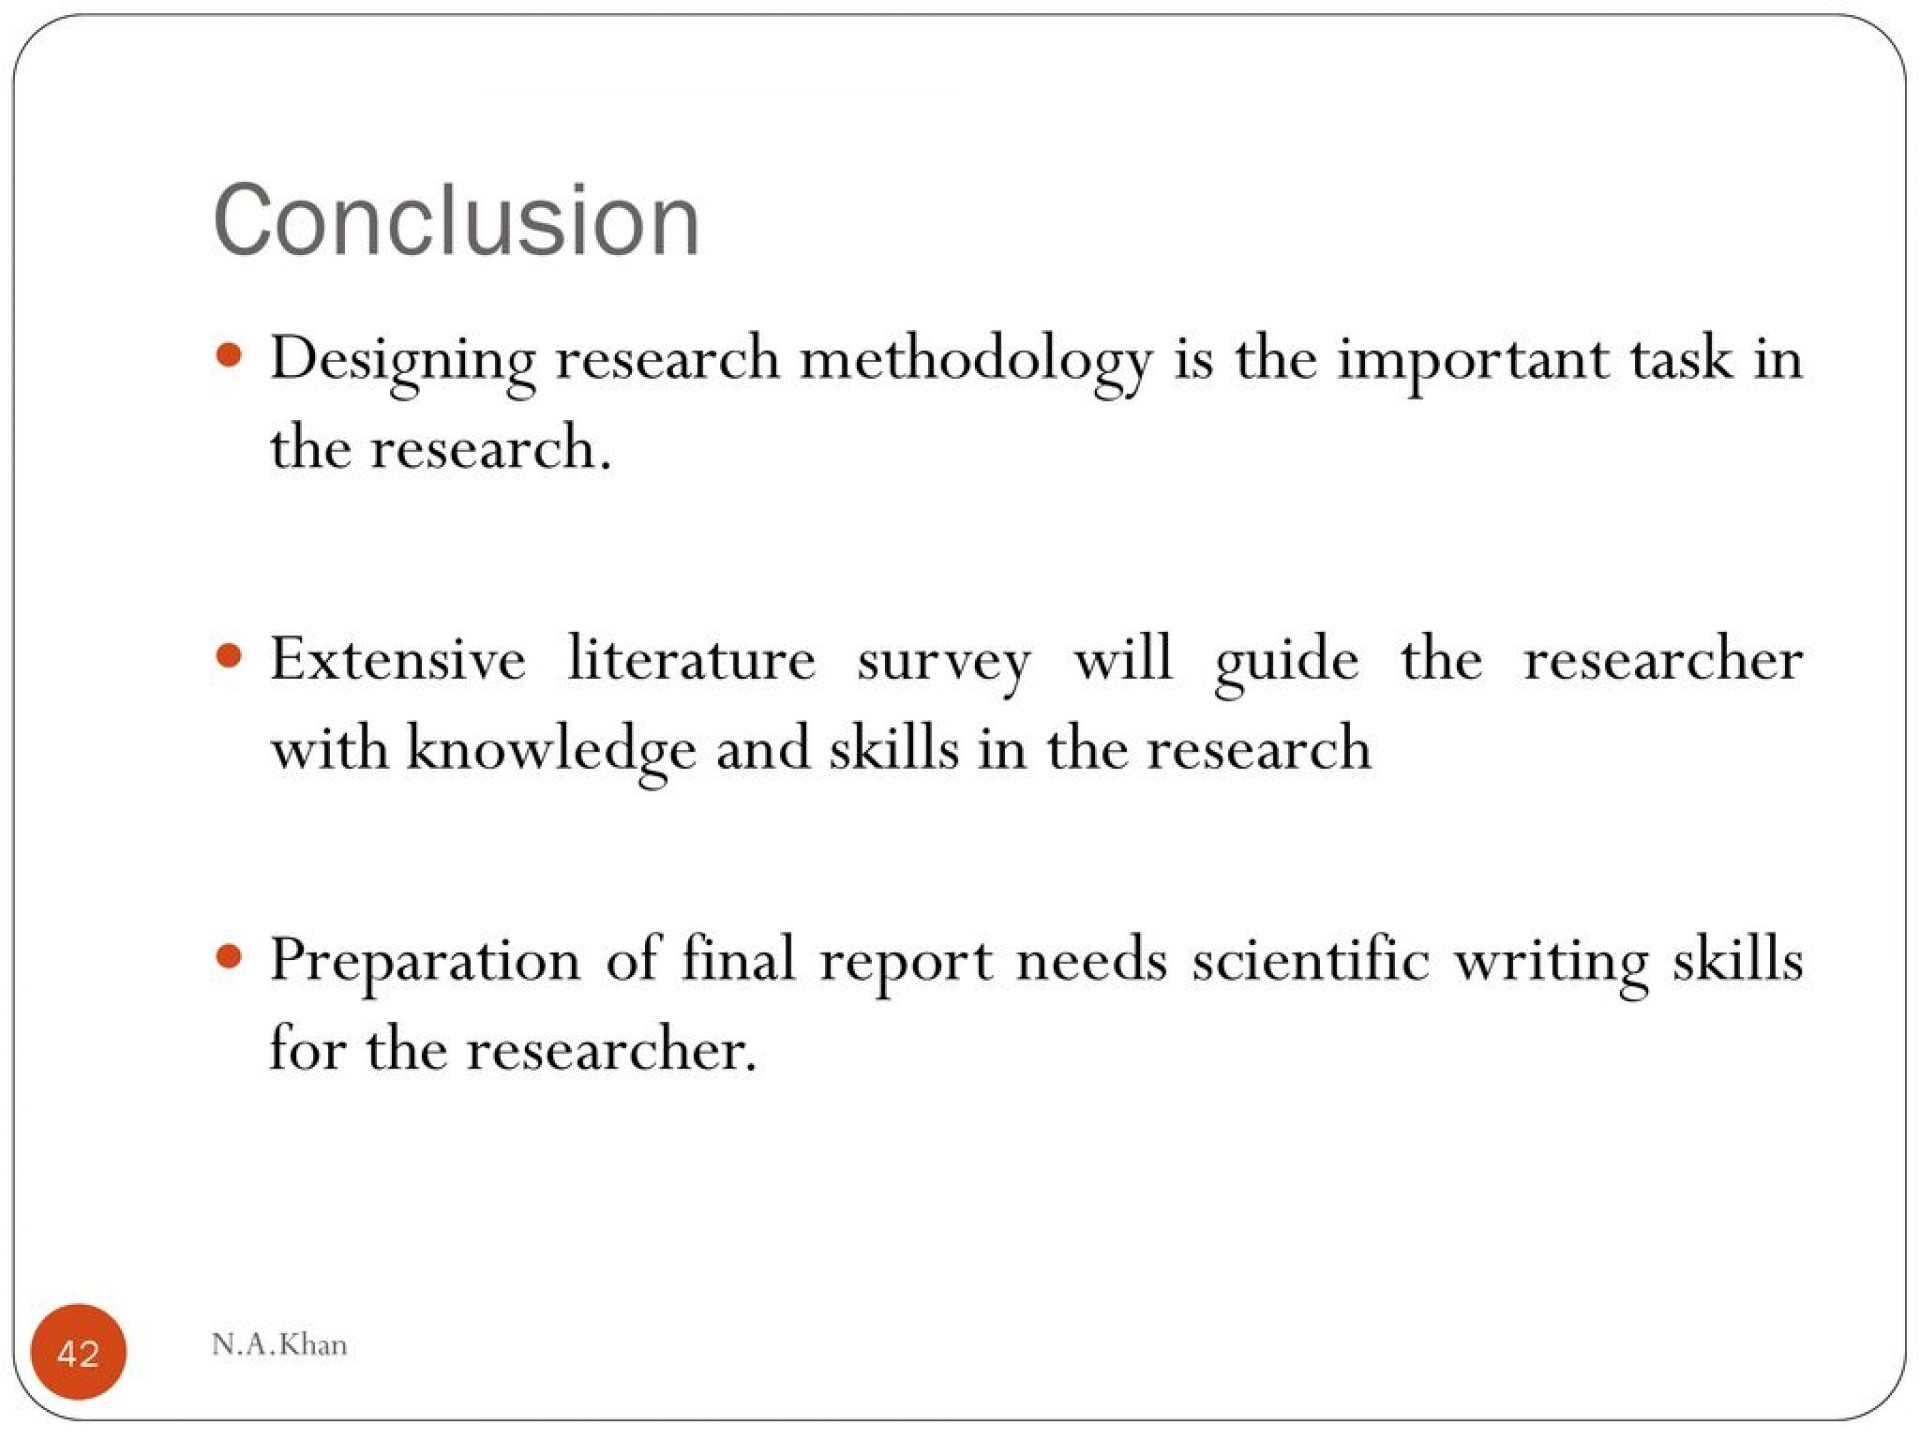 003 Conclusiondesigningresearchmethodologyistheimportanttaskintheresearch Research Paper Conclusion Of Beautiful Methodology Chapter Hypothesis In 1920